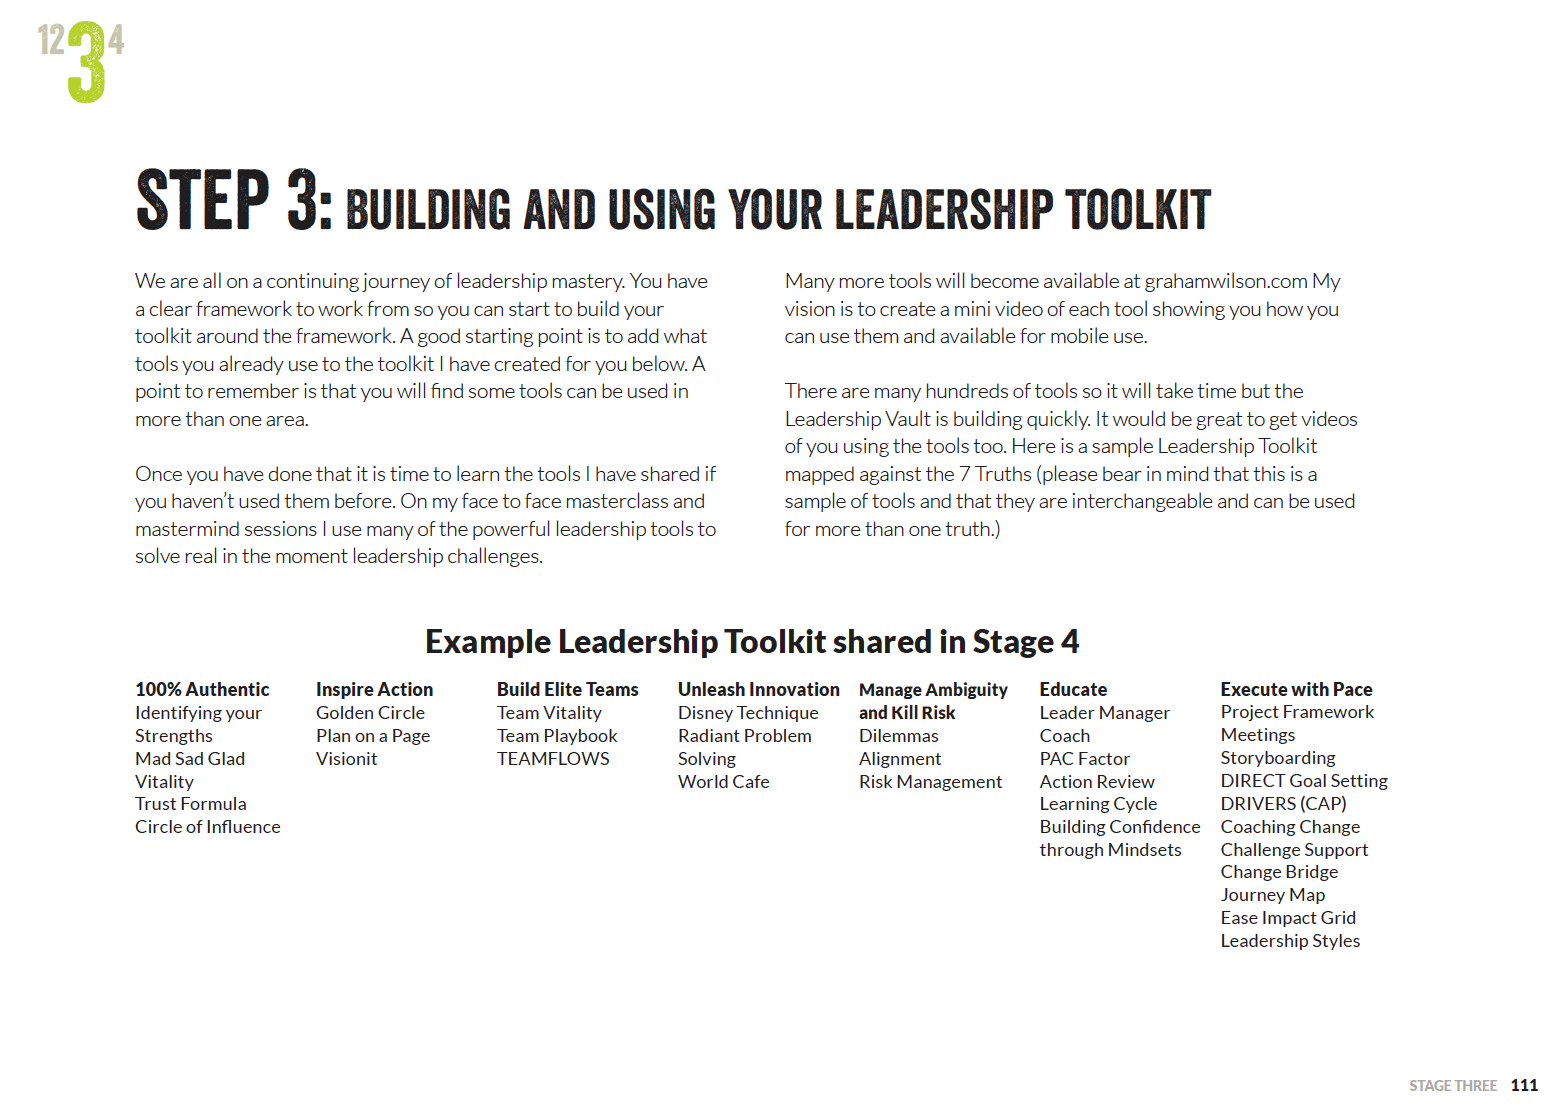 Building and Using Your Leadership Toolkit by Successfactory